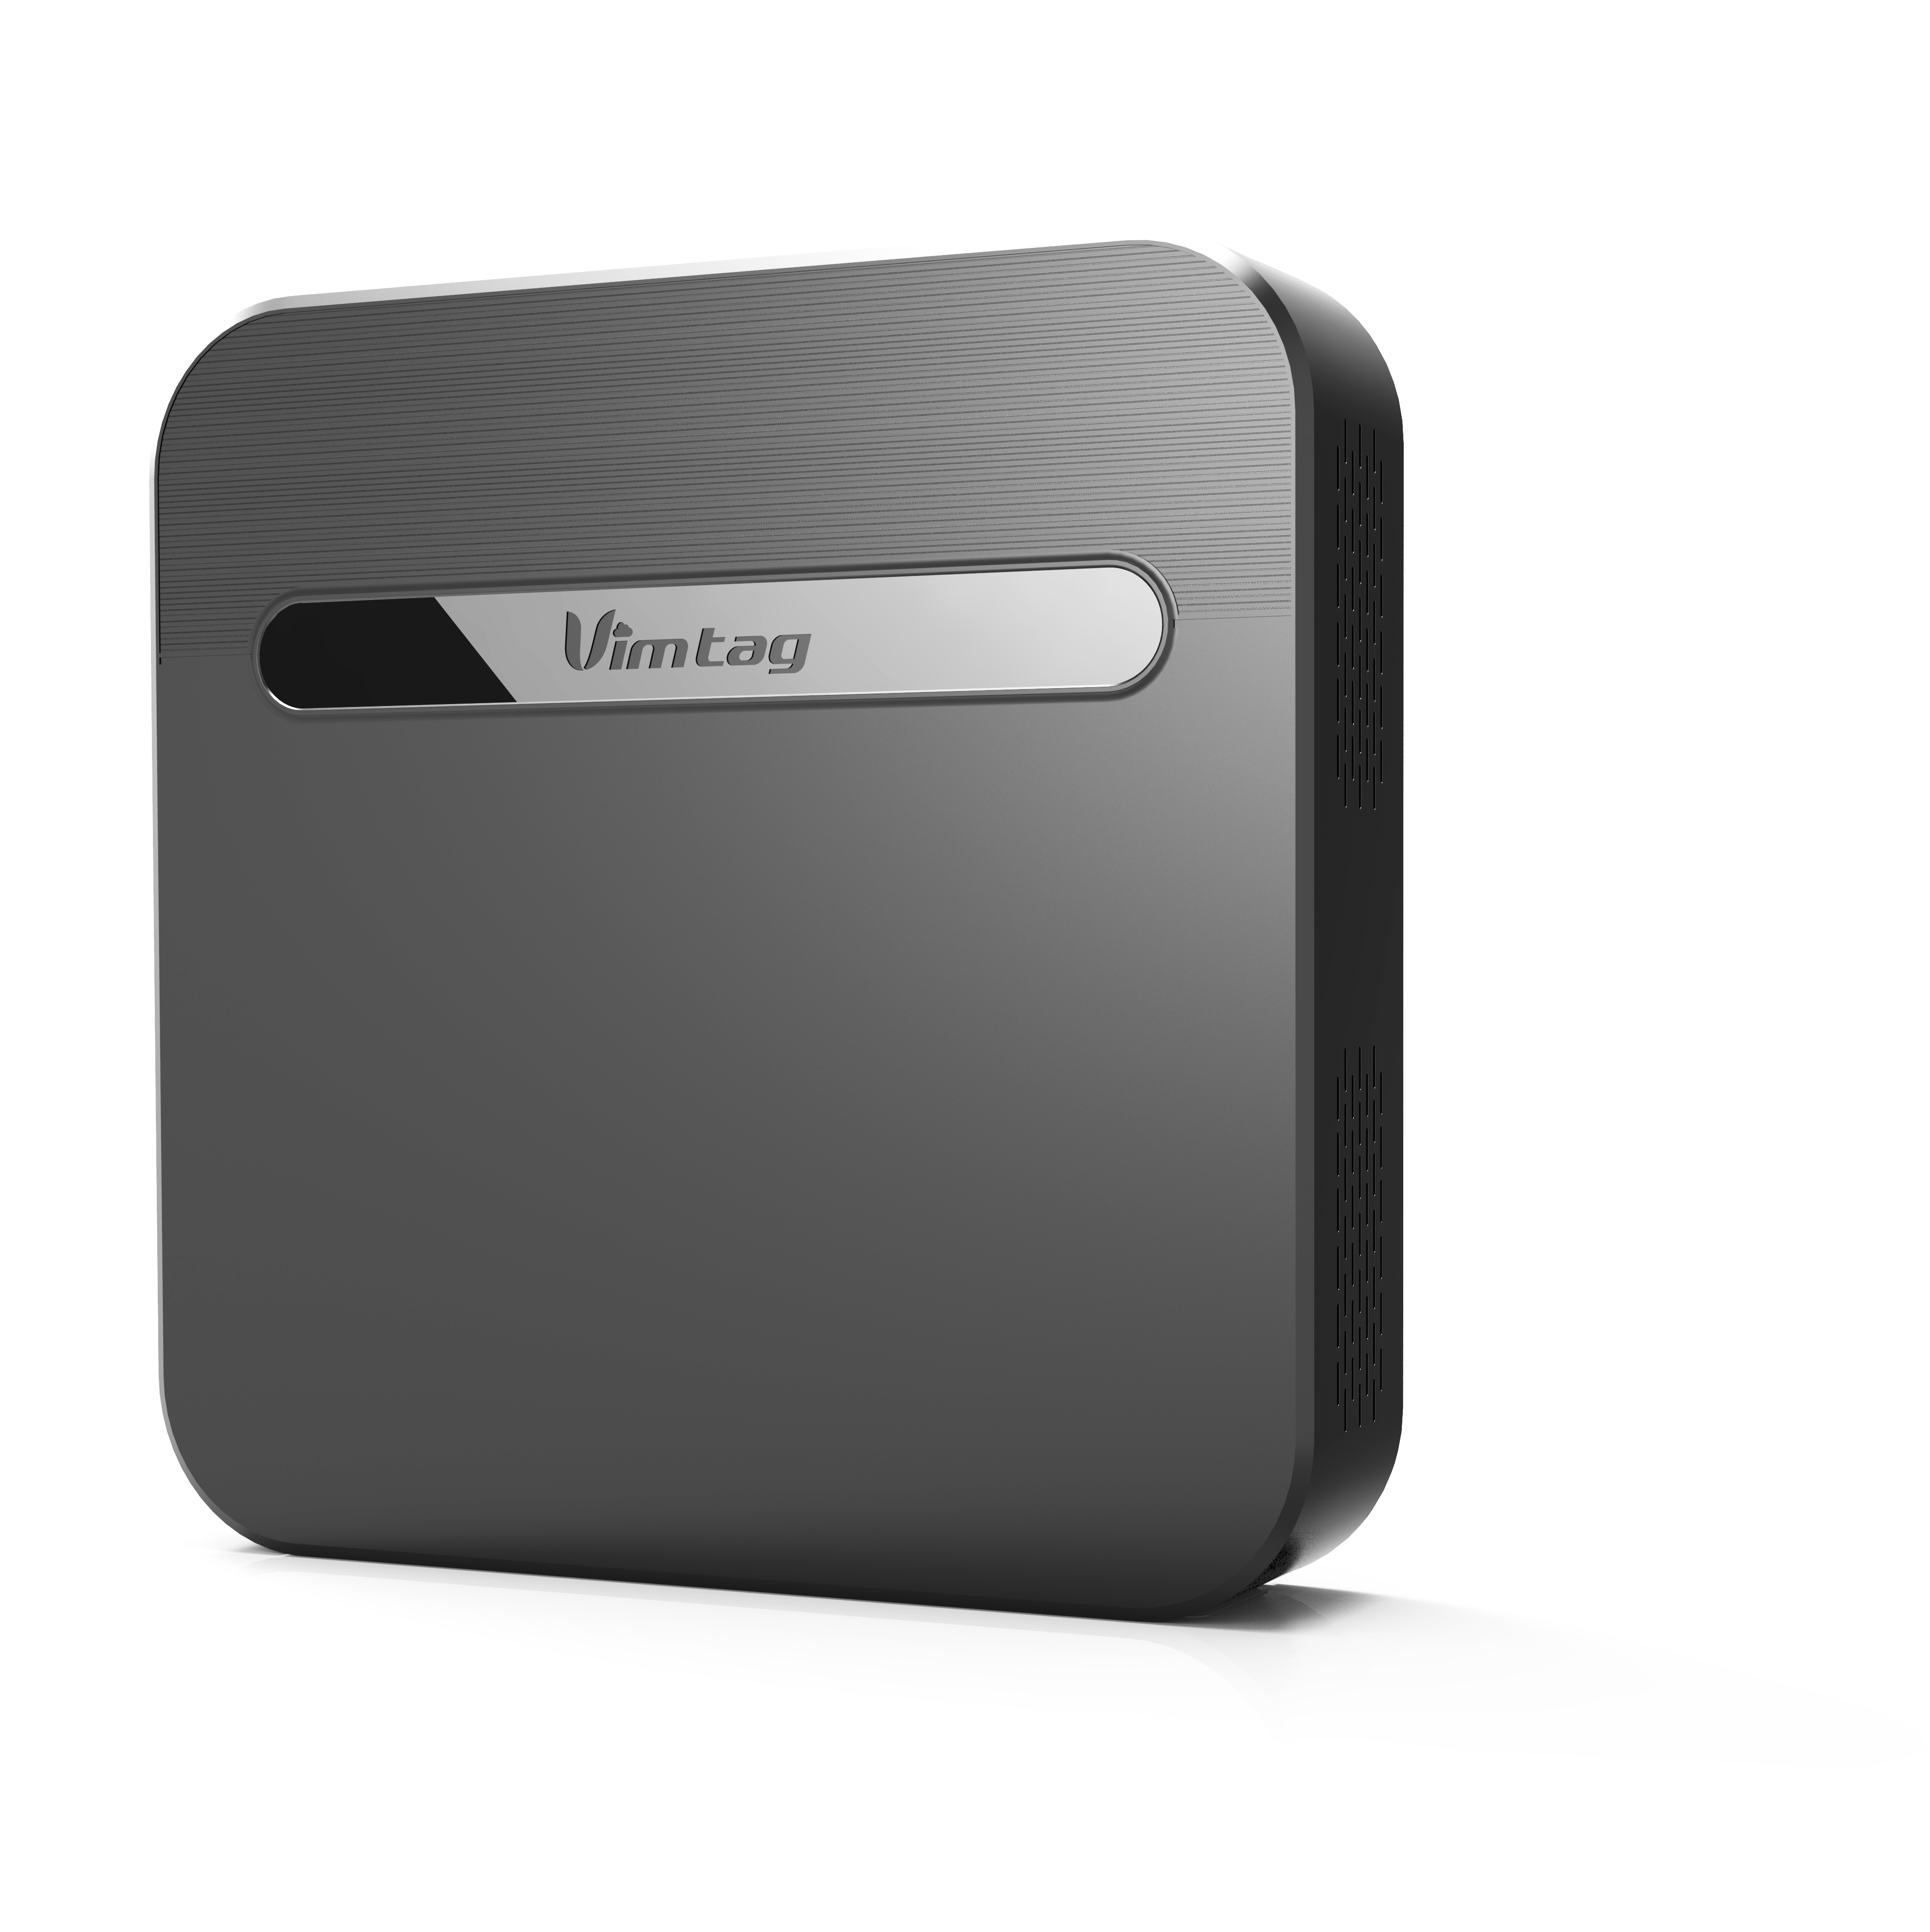 Vimtag Memo Series Cloud Box S1-S, 8channels 1080P video recorder, no HDD, max supported: 4 TB HDD, LAN